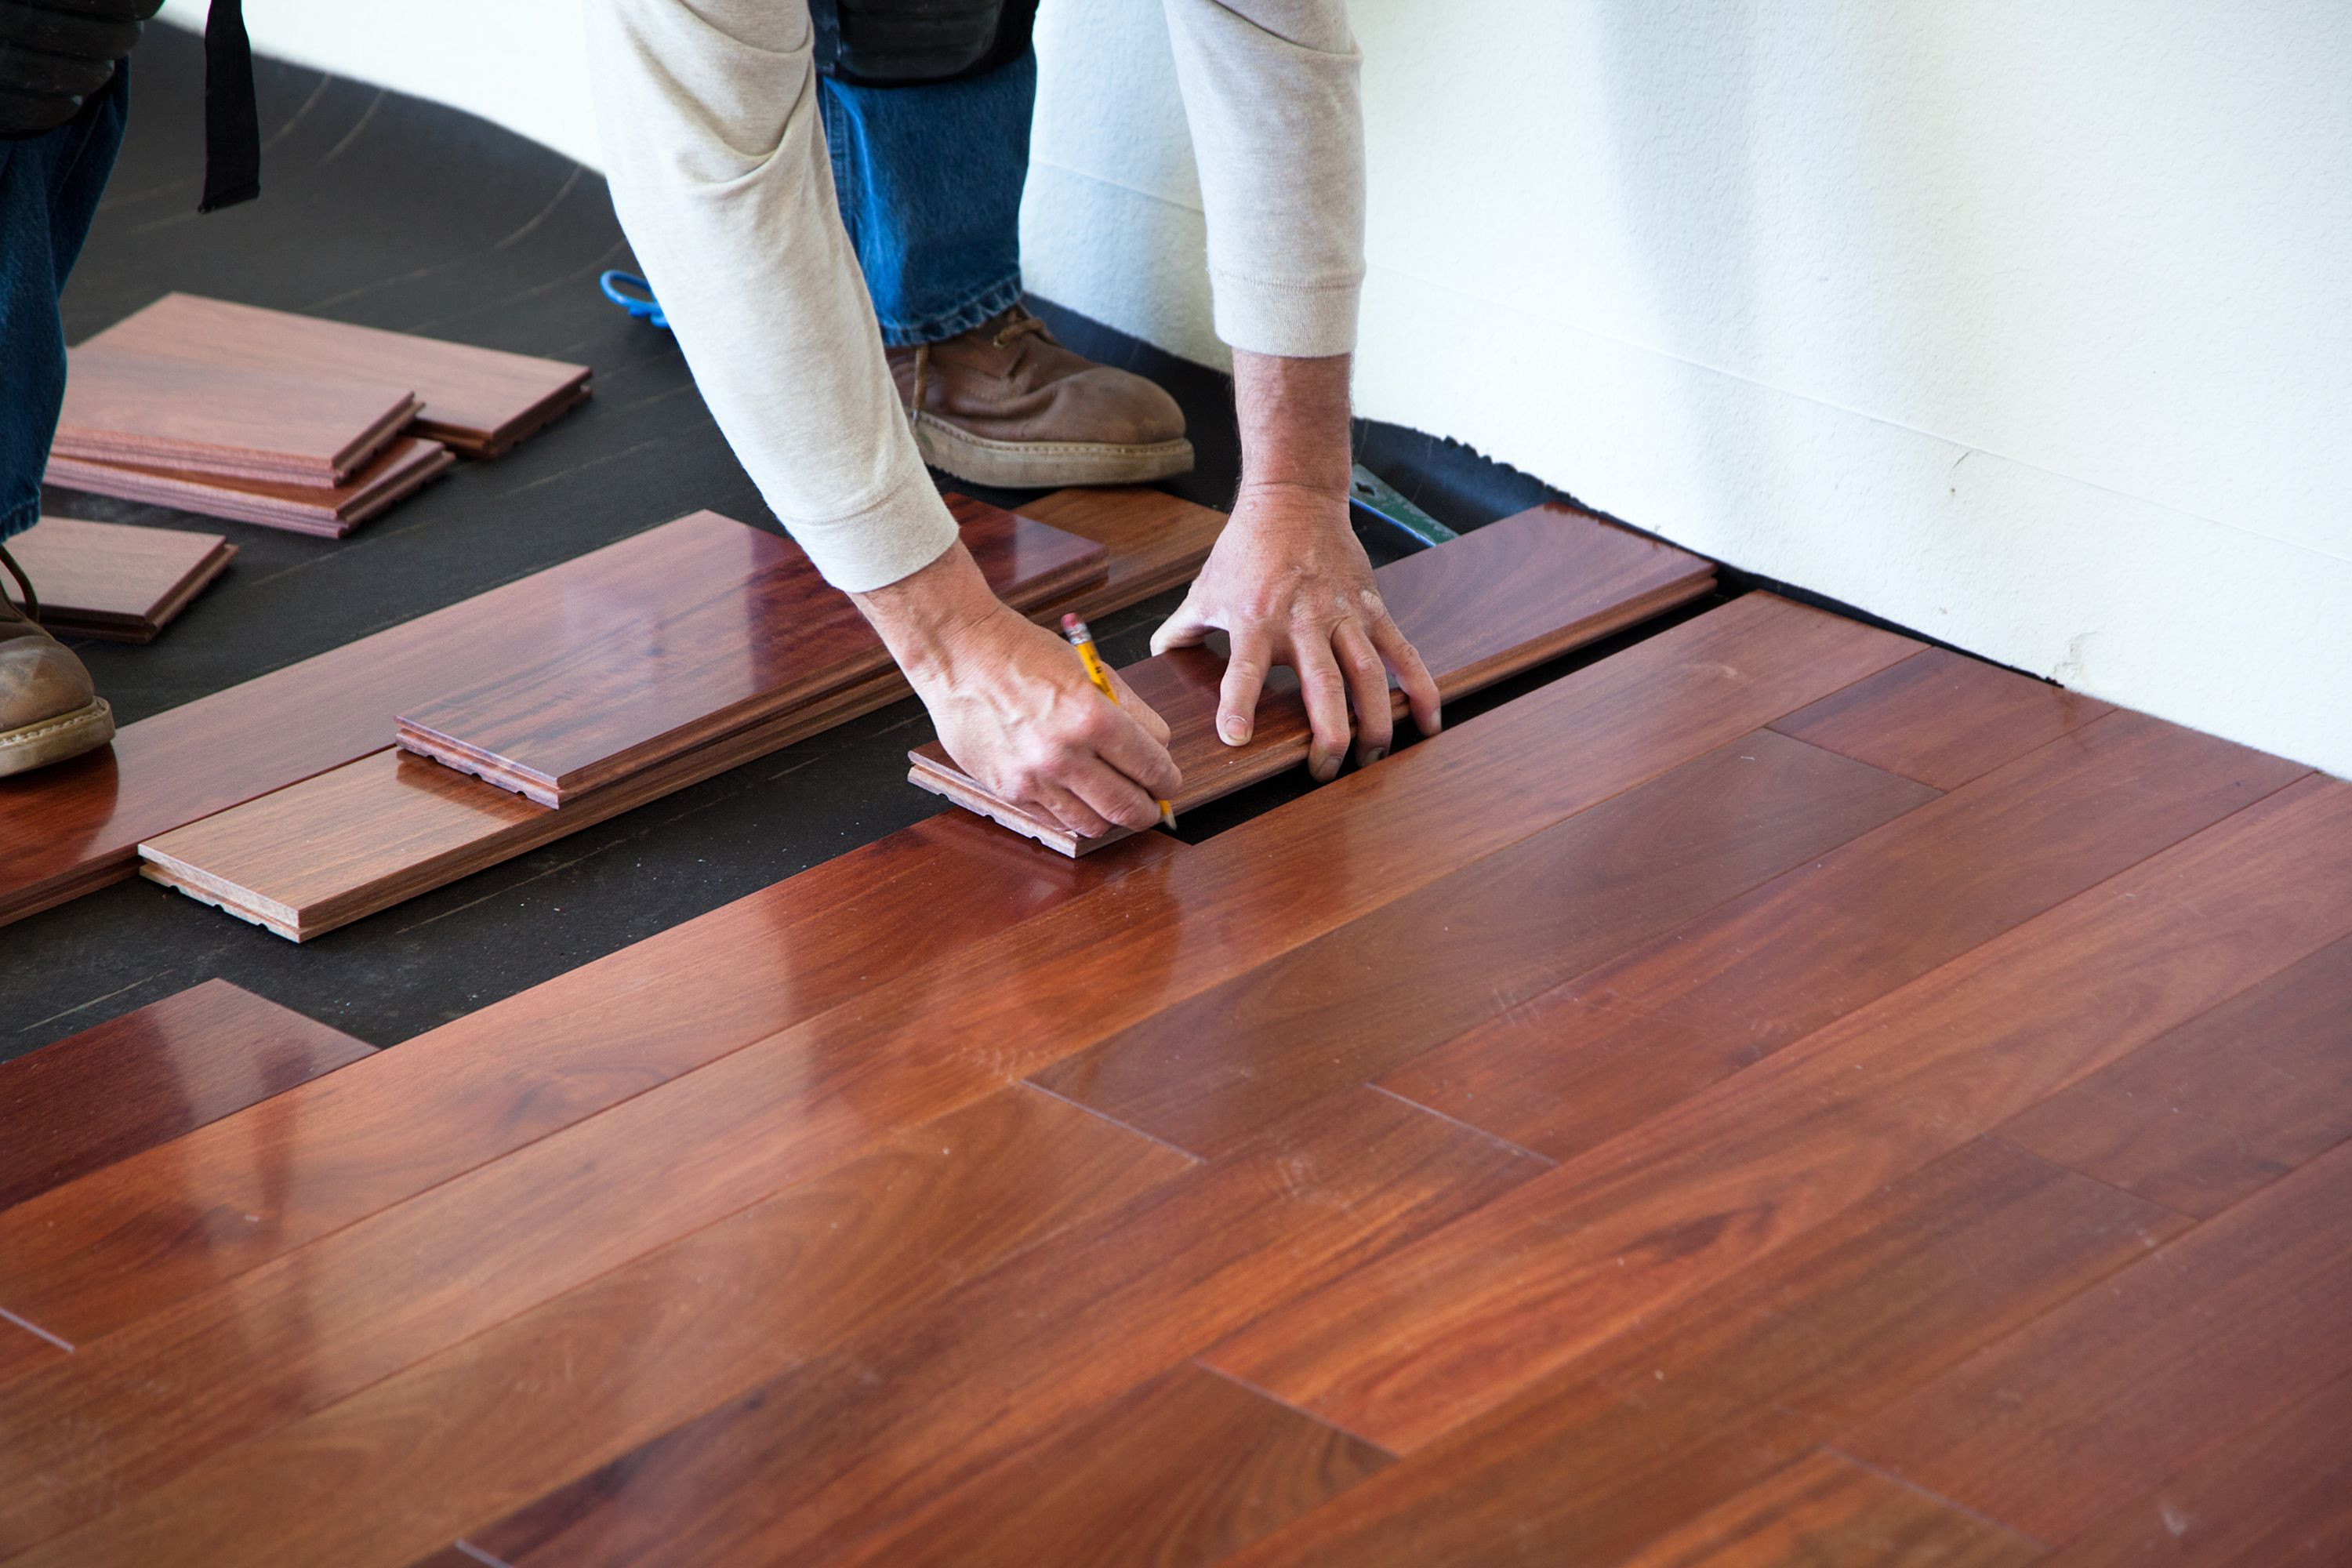 how to install hardwood floors with glue of the subfloor is the foundation of a good floor intended for installing hardwood floor 170040982 582b748c5f9b58d5b17d0c58